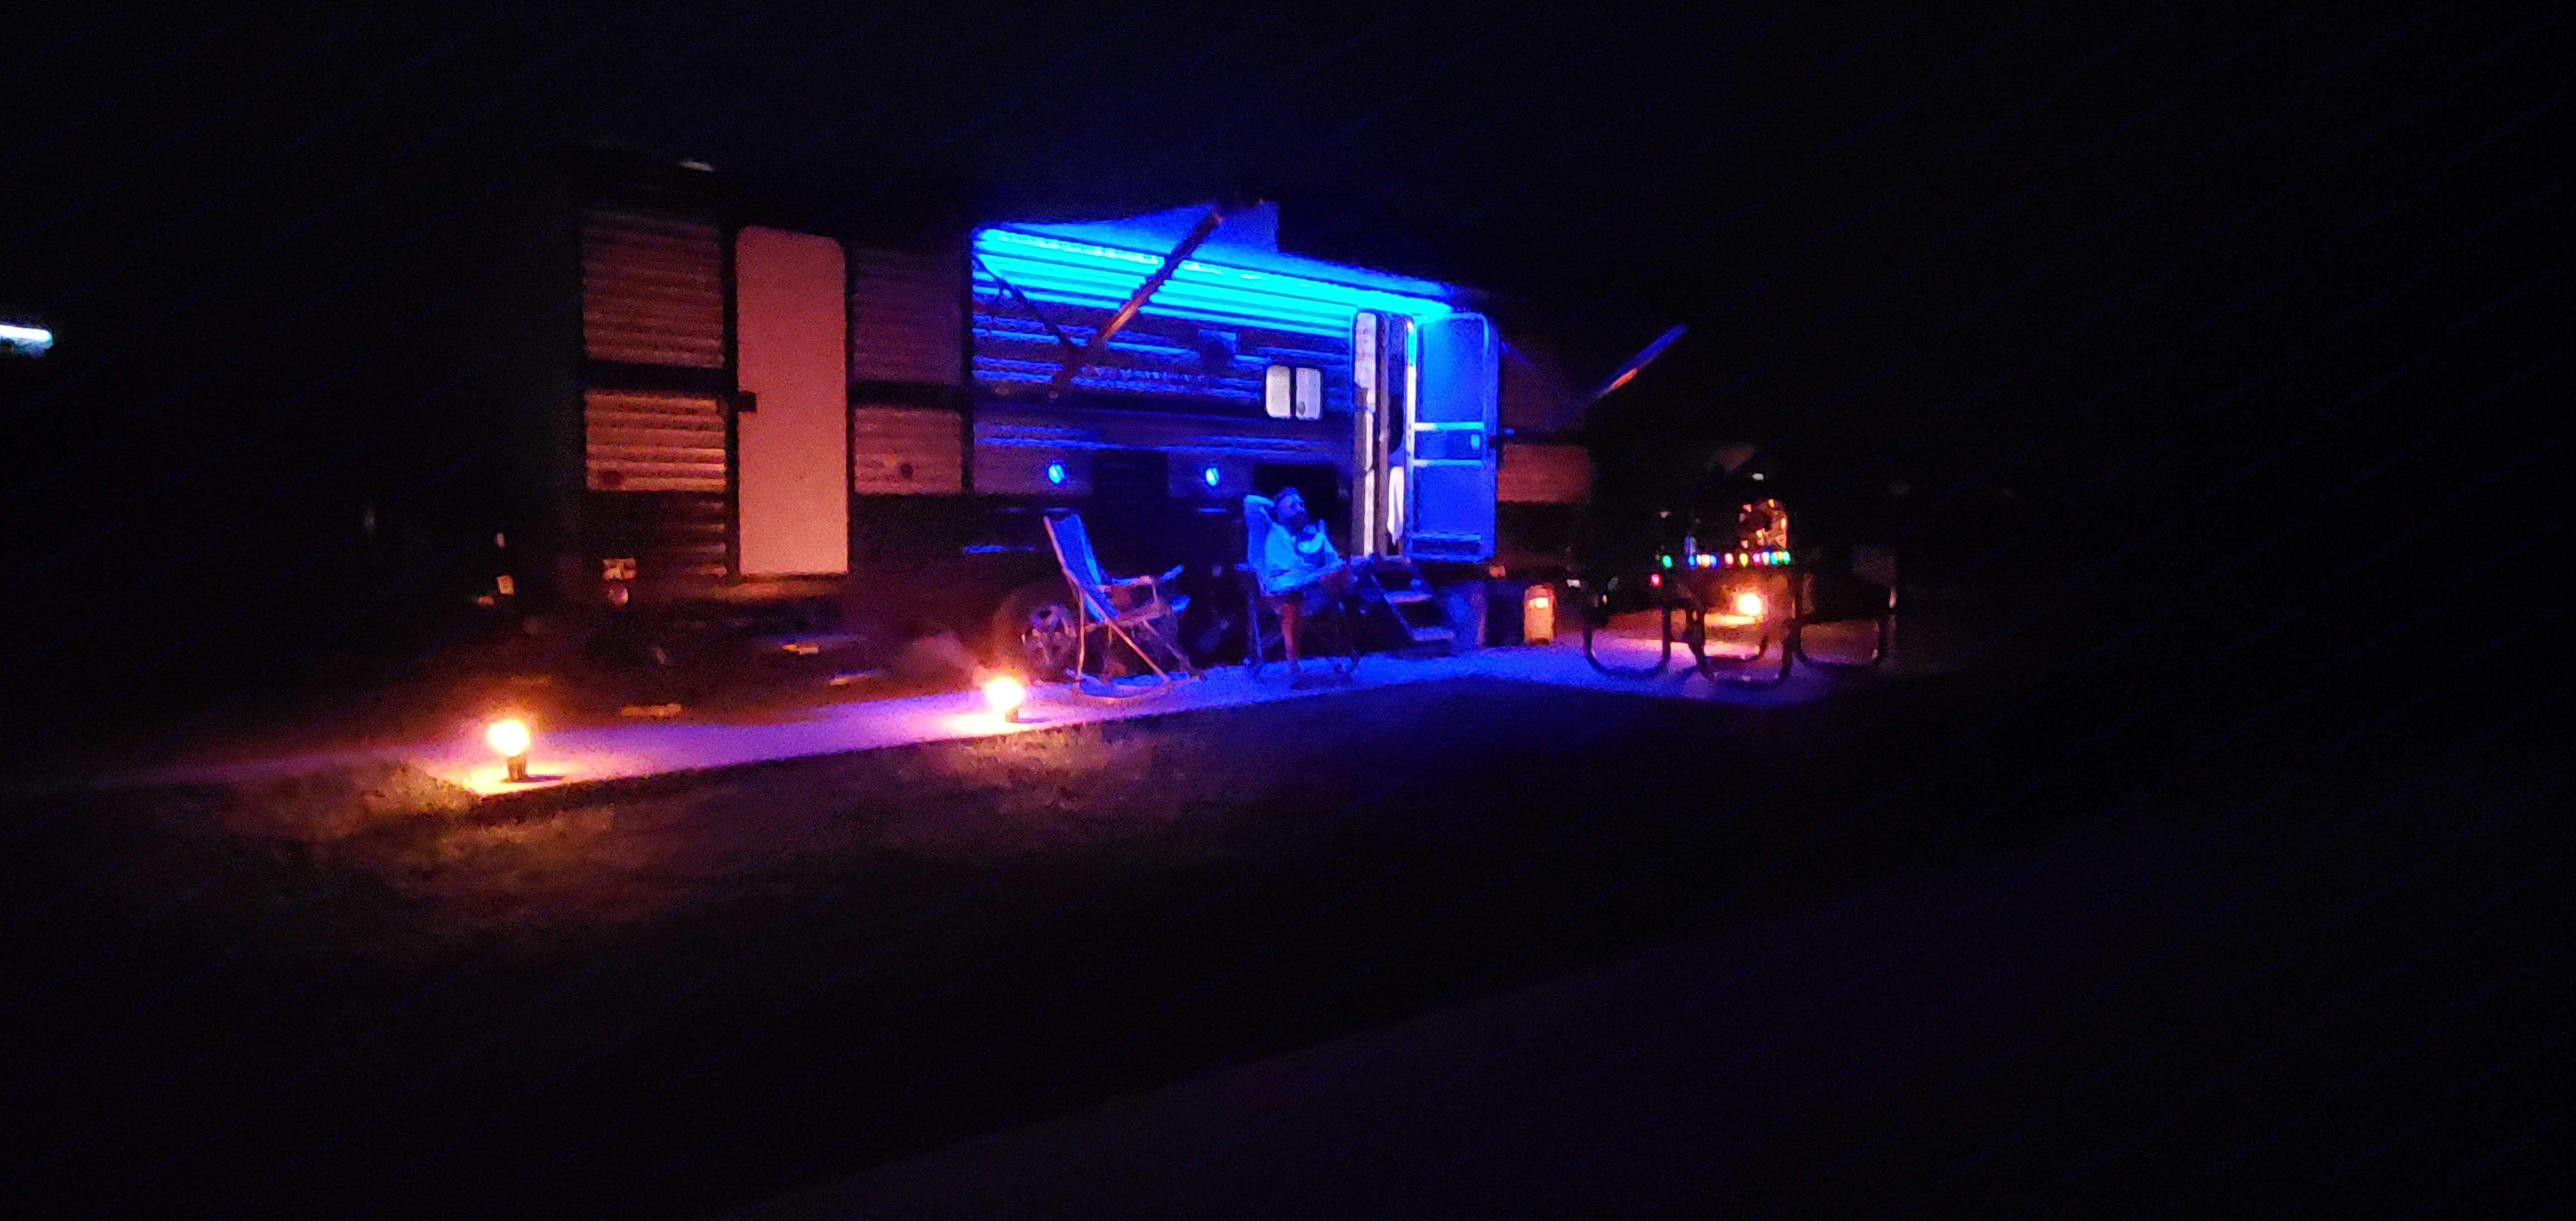 Enjoy the outdoors in comfort and style. Our trailer comes with tiki torches and outdoor lighting to make the outdoors as much fun as the inside. Forest River Cherokee Grey Wolf 2020